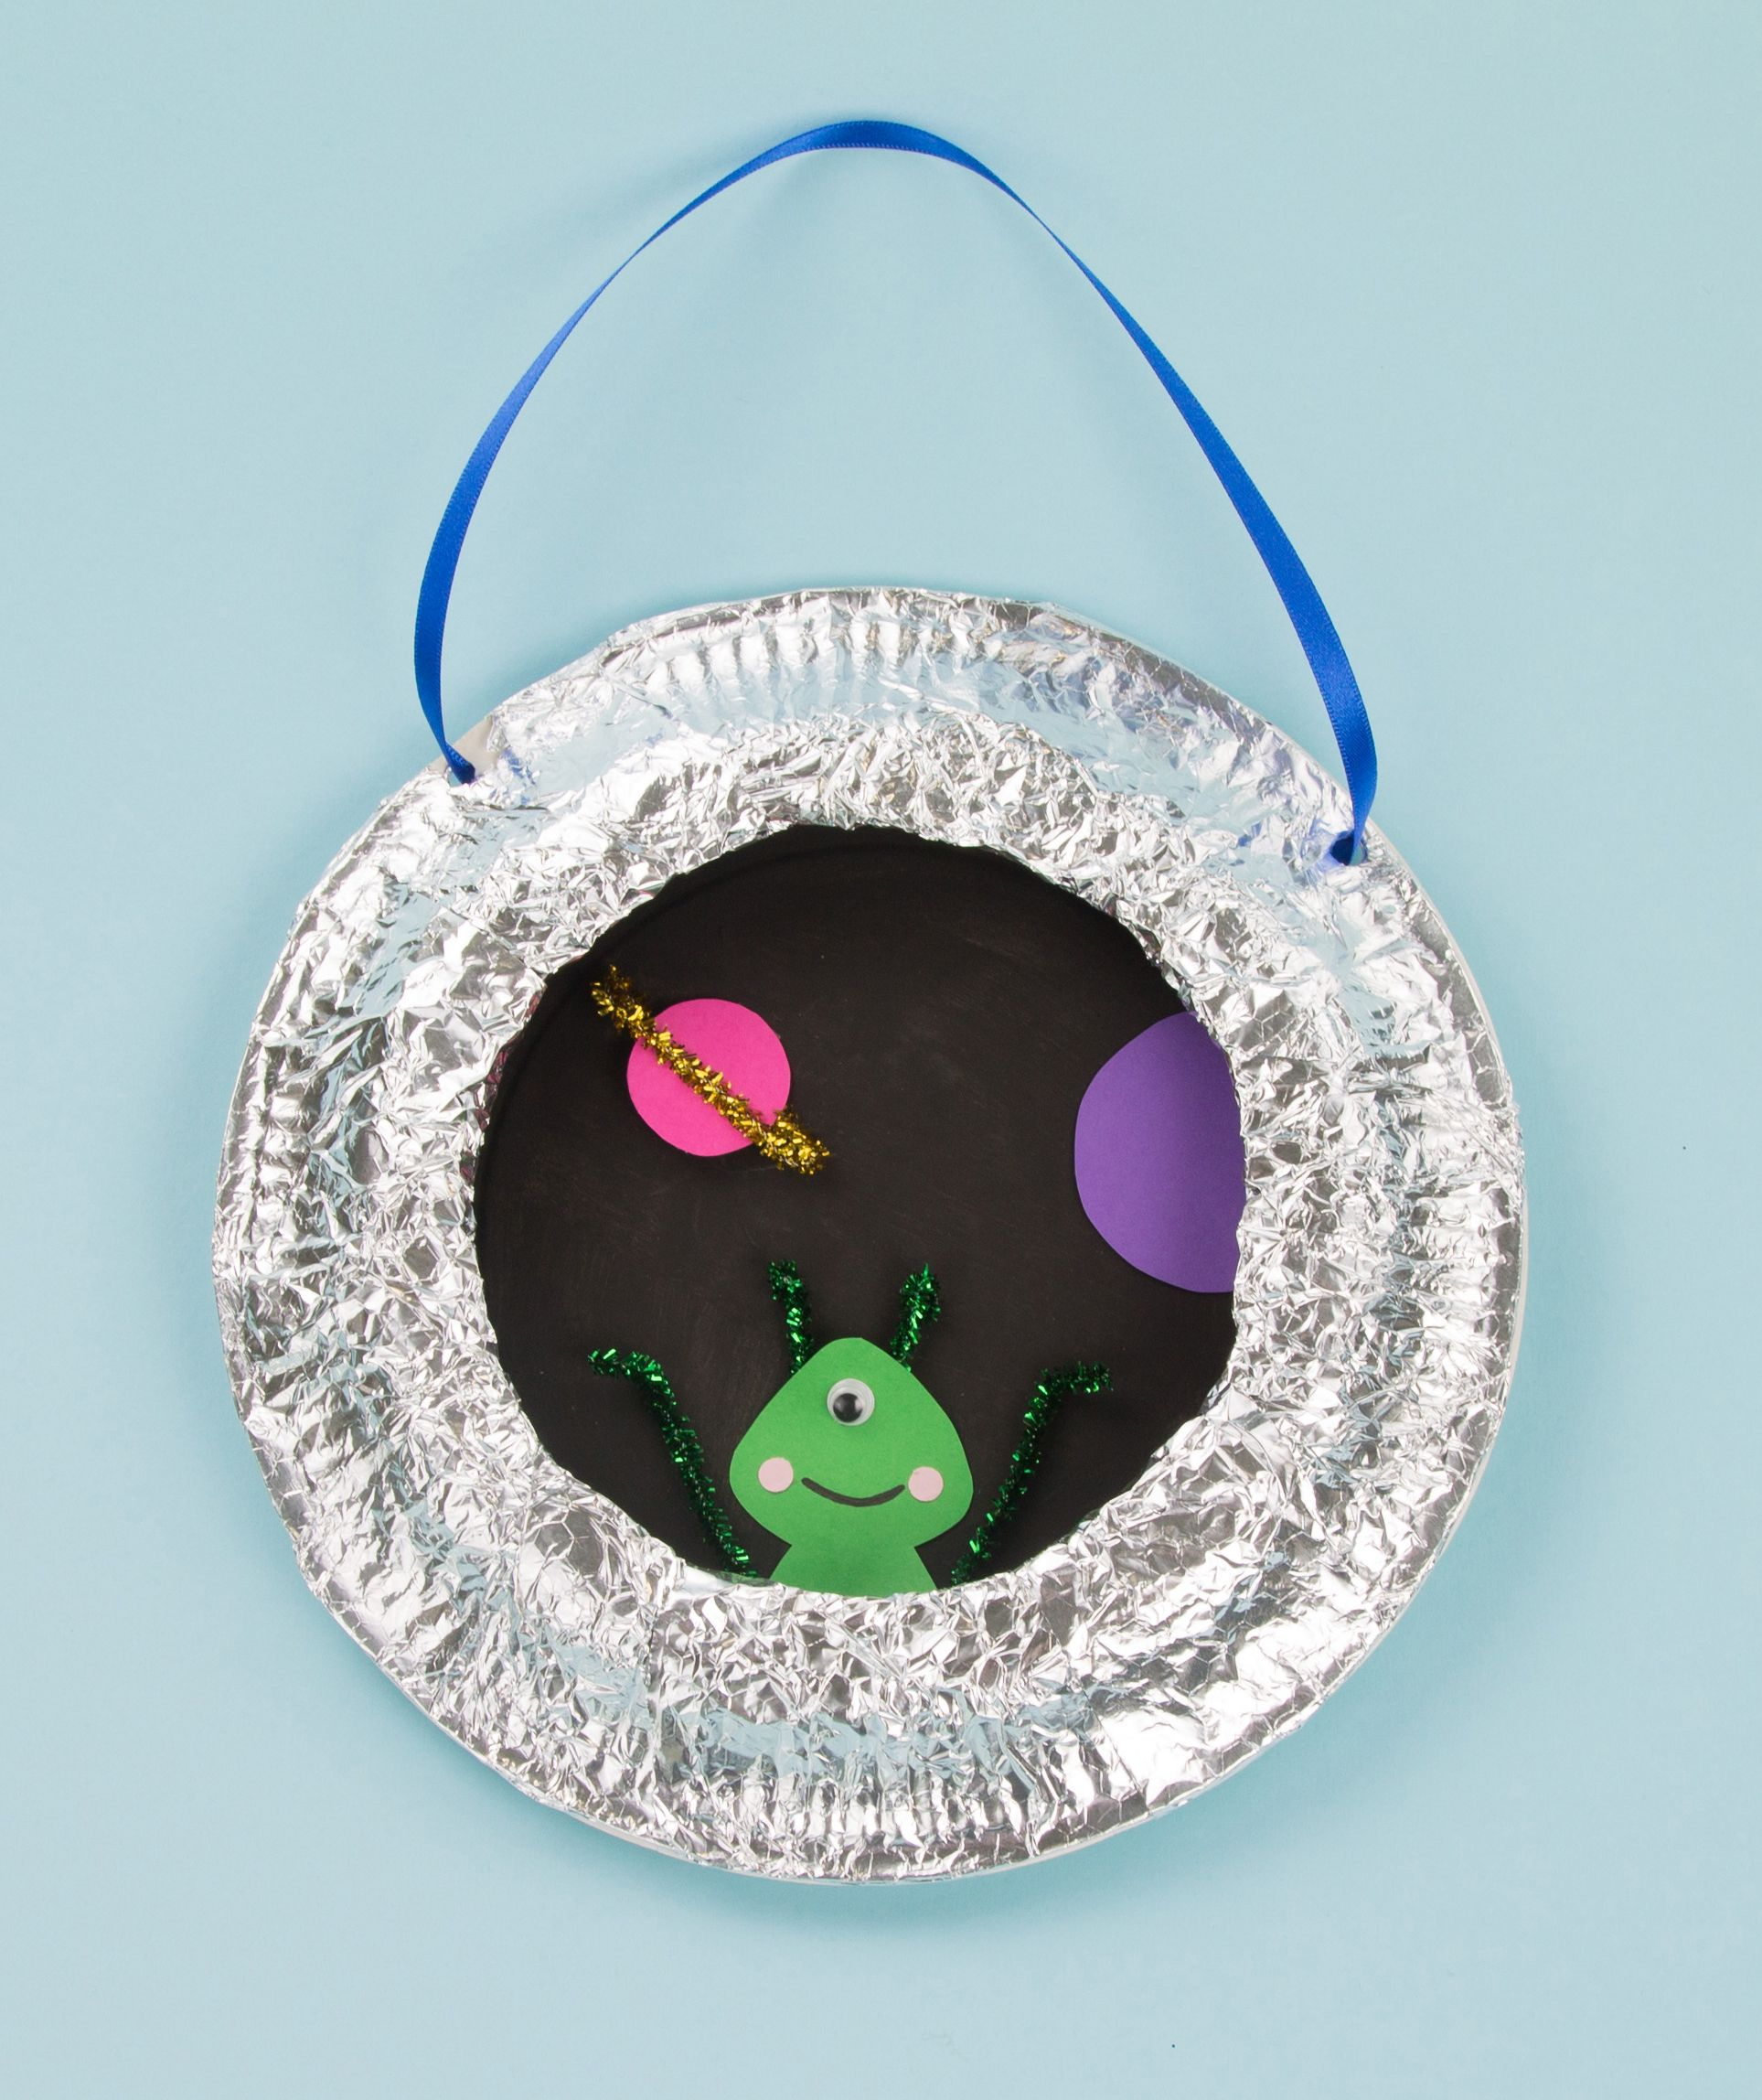 Space Crafts For Kids Spaceship Porthole Craft Idea From Twinkl Space Crafts